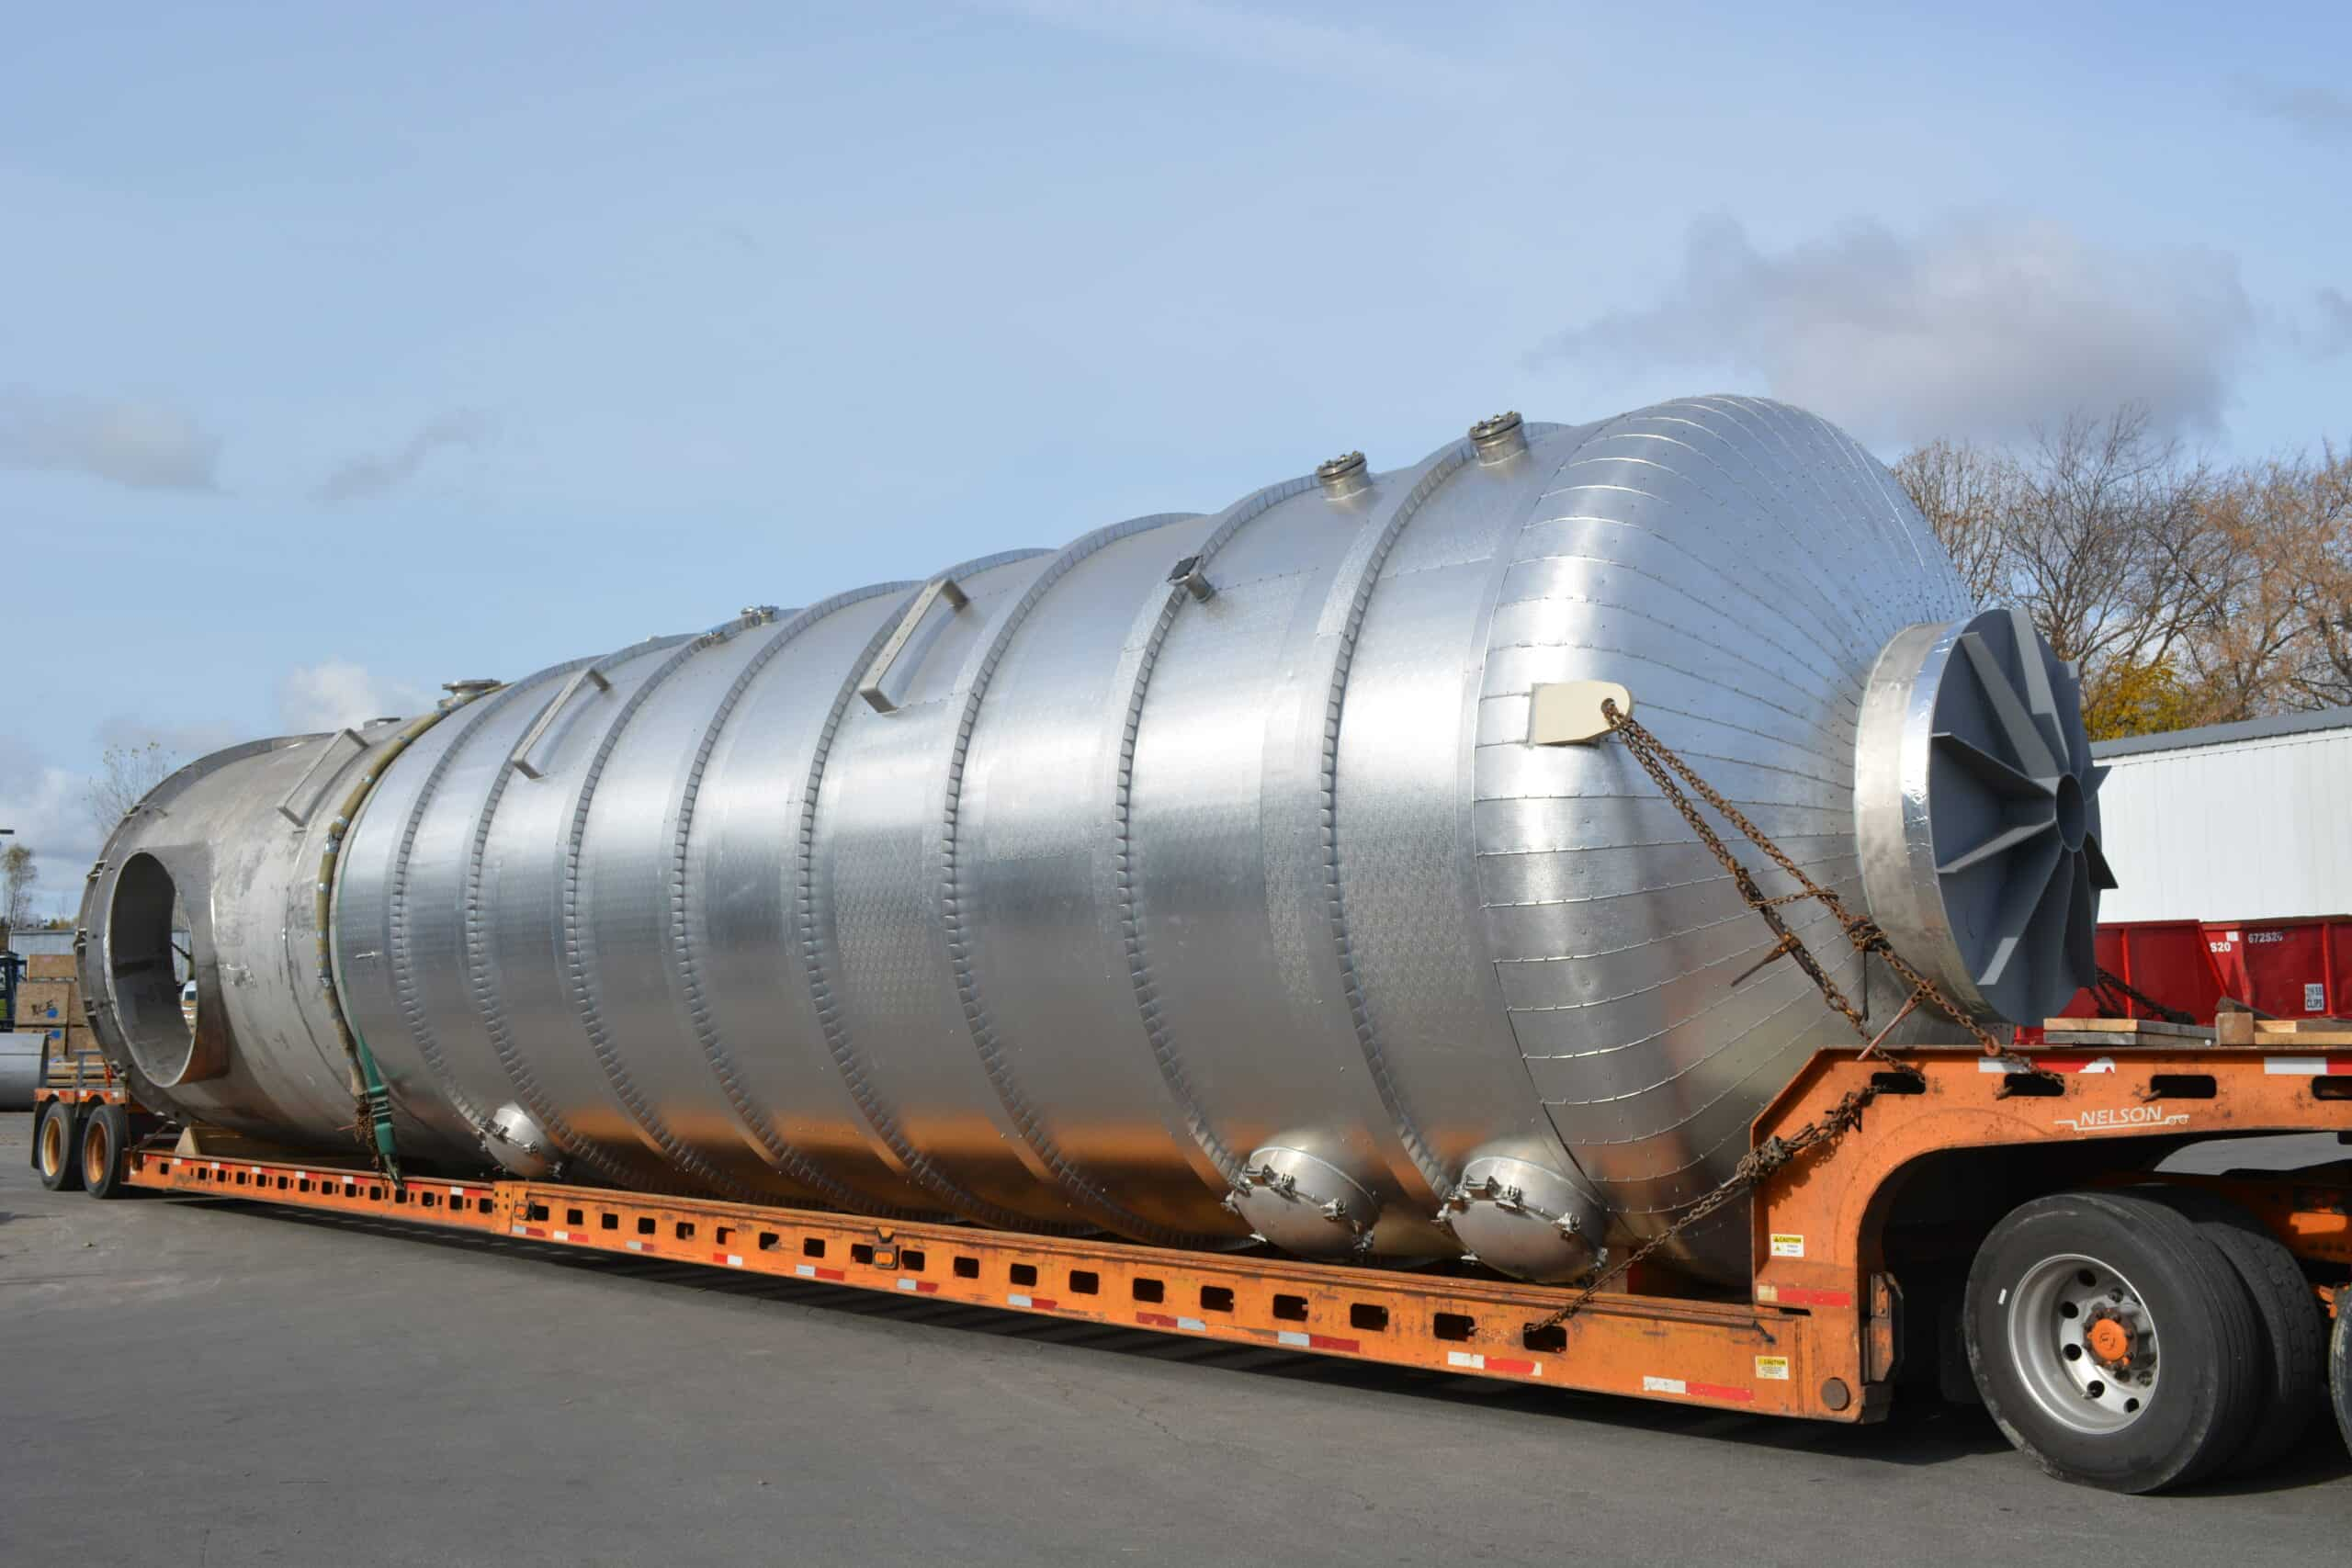 ASME pressure vessel manufacturing ensures safety and quality